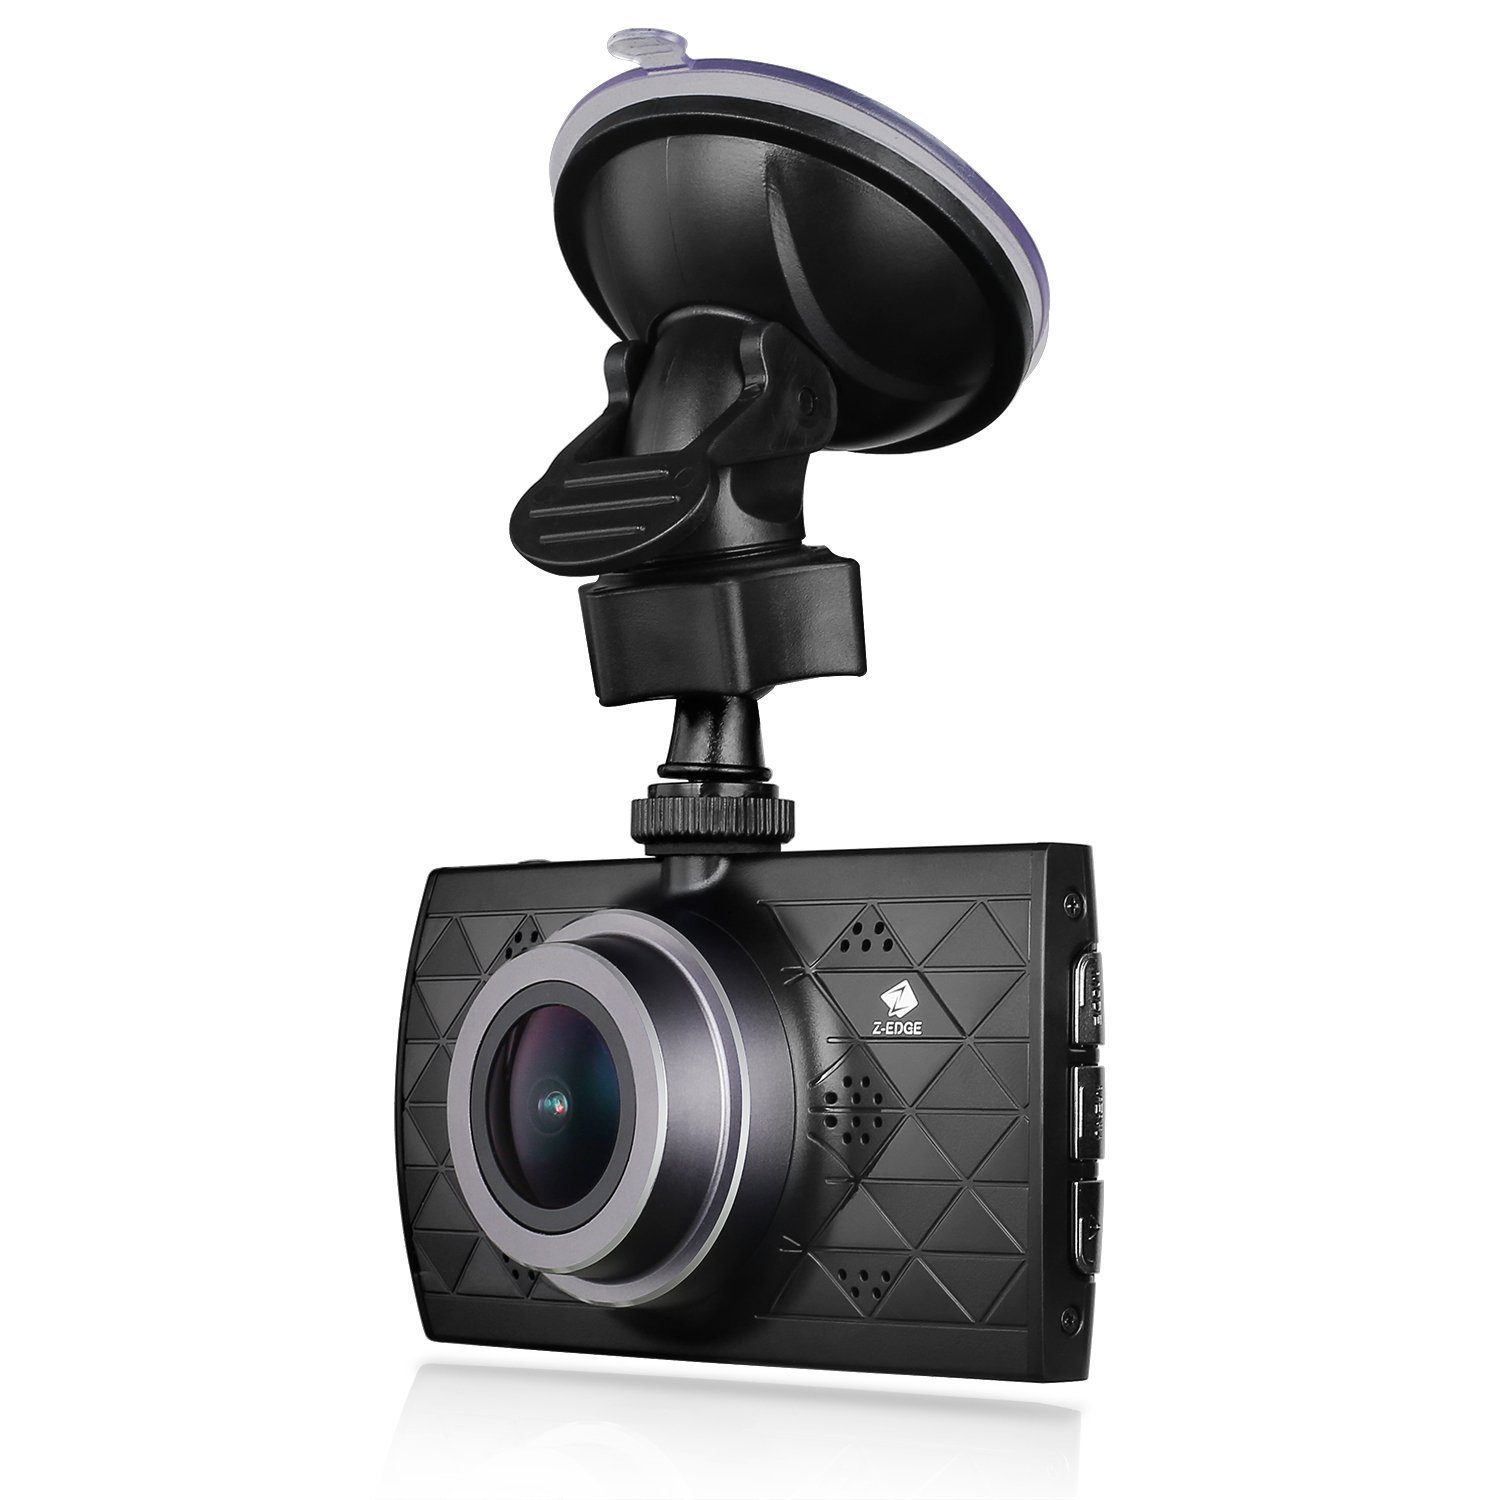 Z-EDGE Z3 Plus 1440P A12 Chipset, 3-Inch Screen Dash Cam